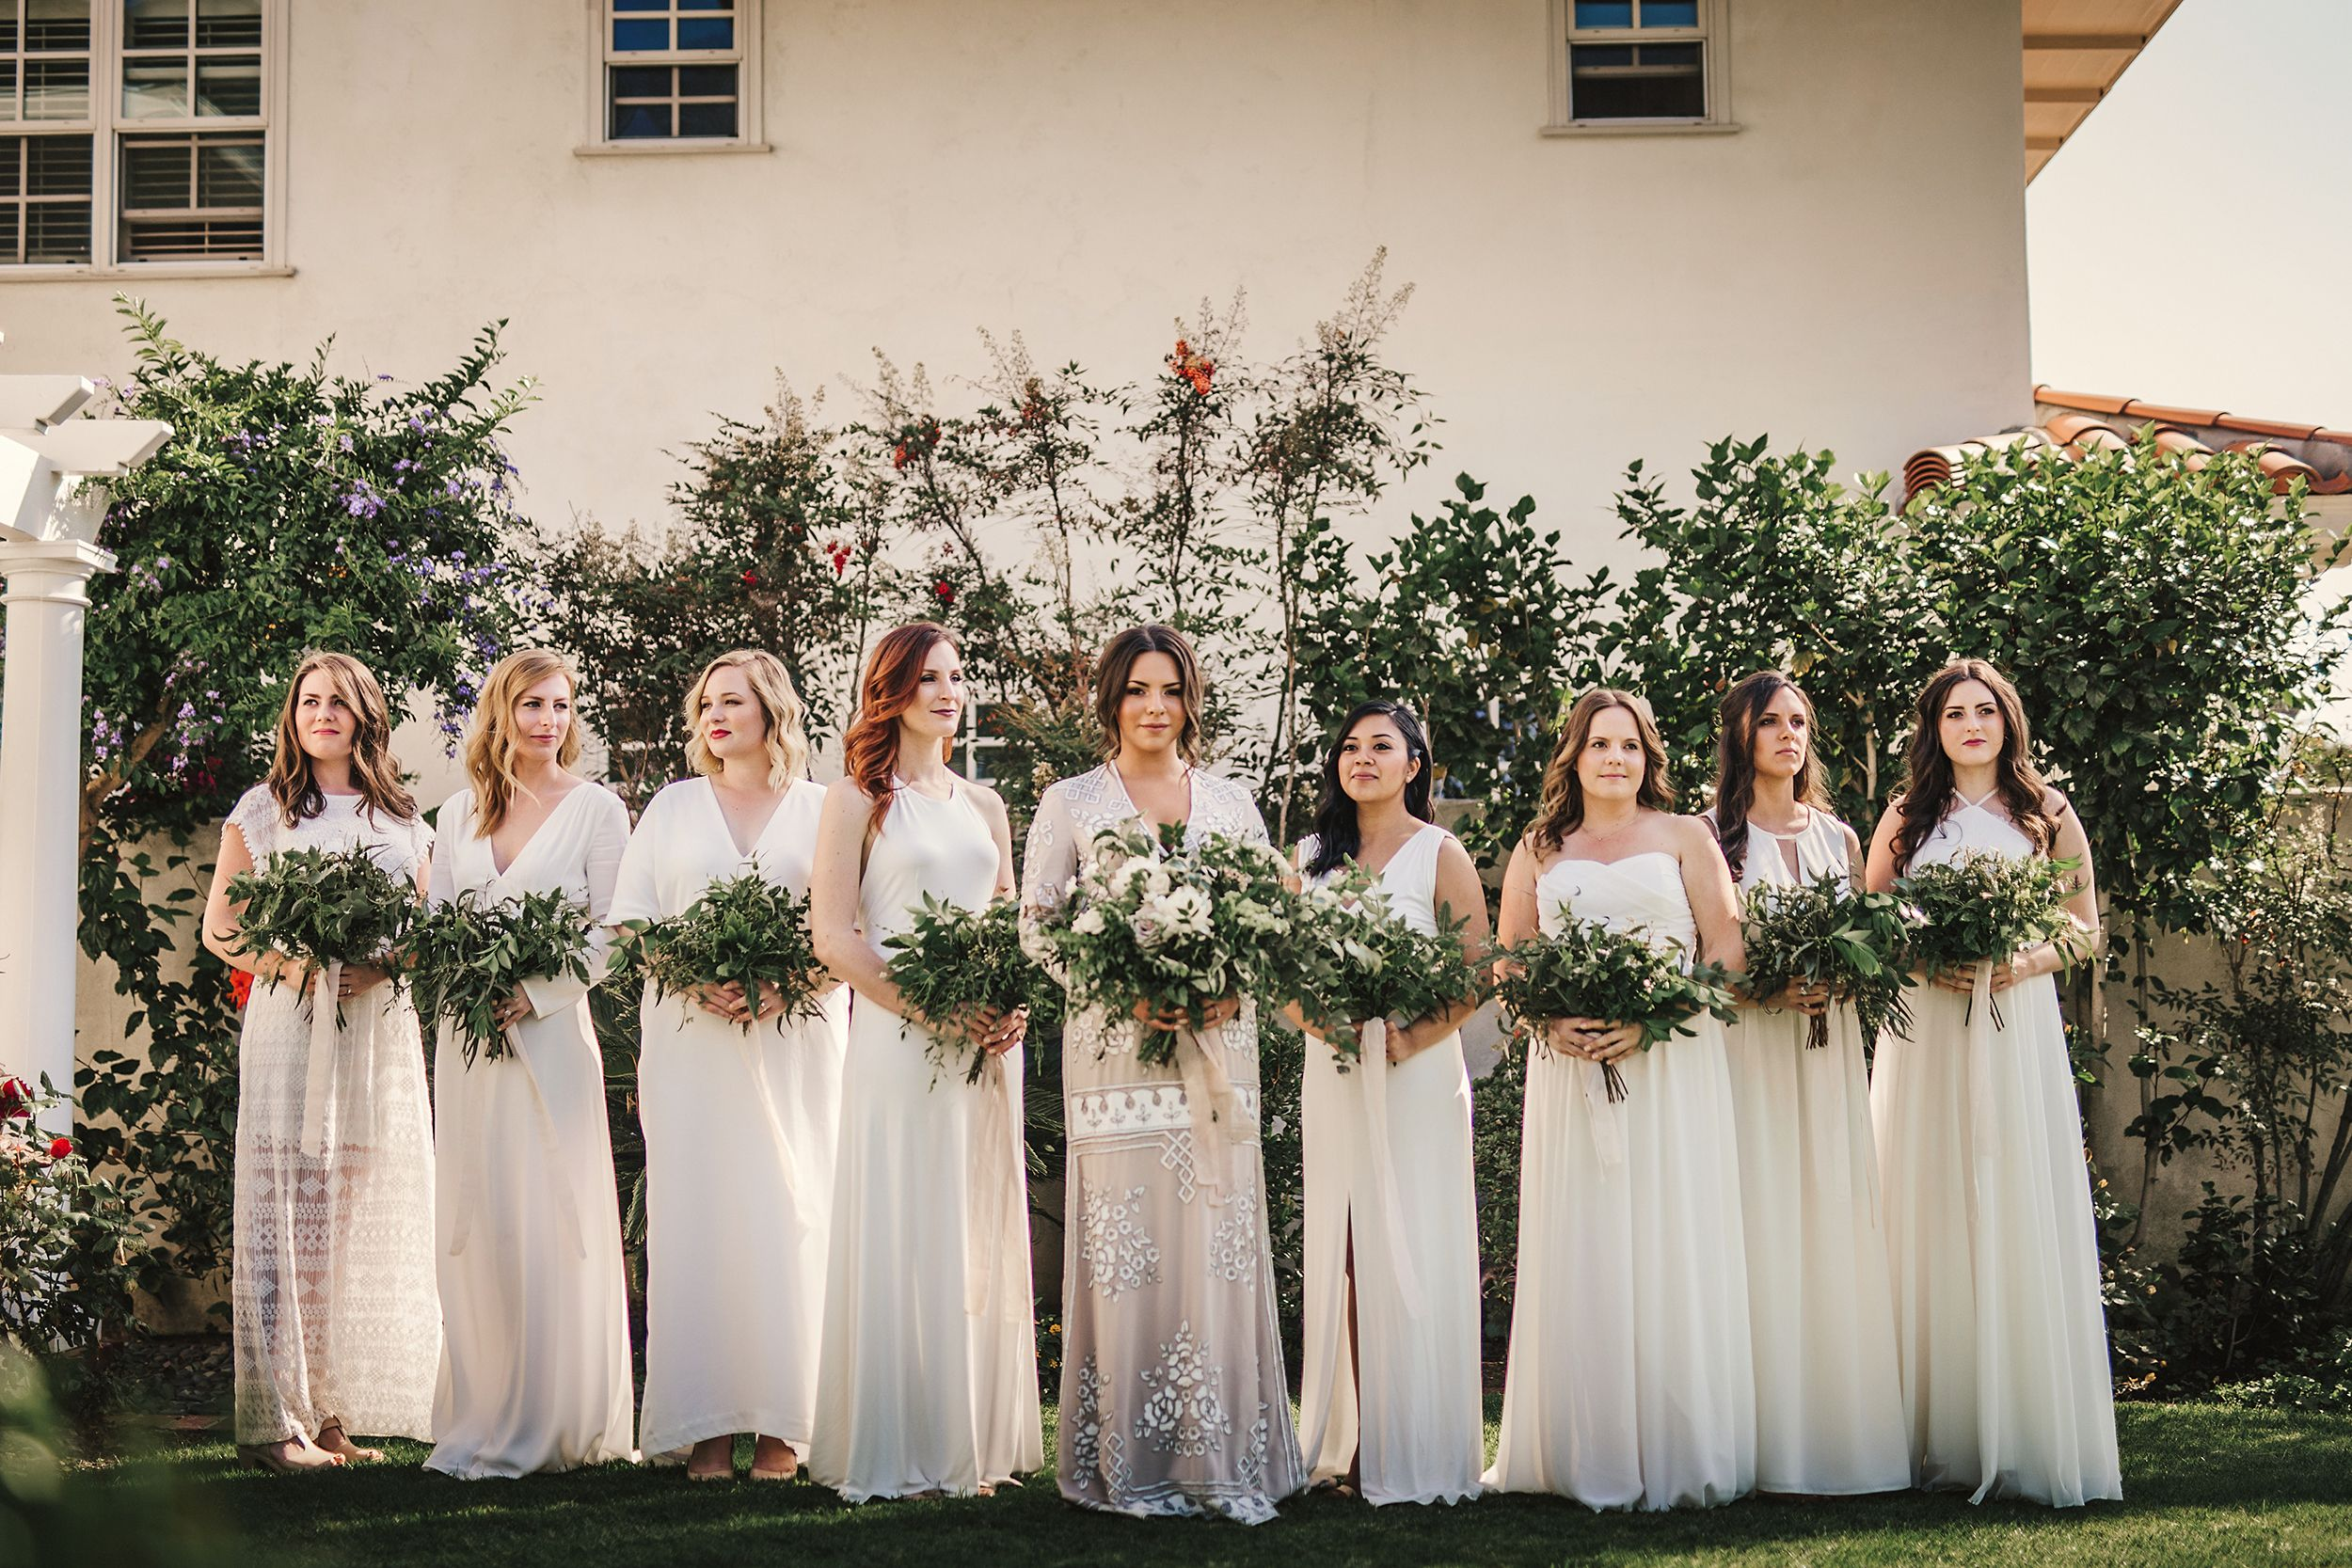 Green and white wedding dress  A beaded BHLDN wedding gown and mismatched white bridesmaid dresses